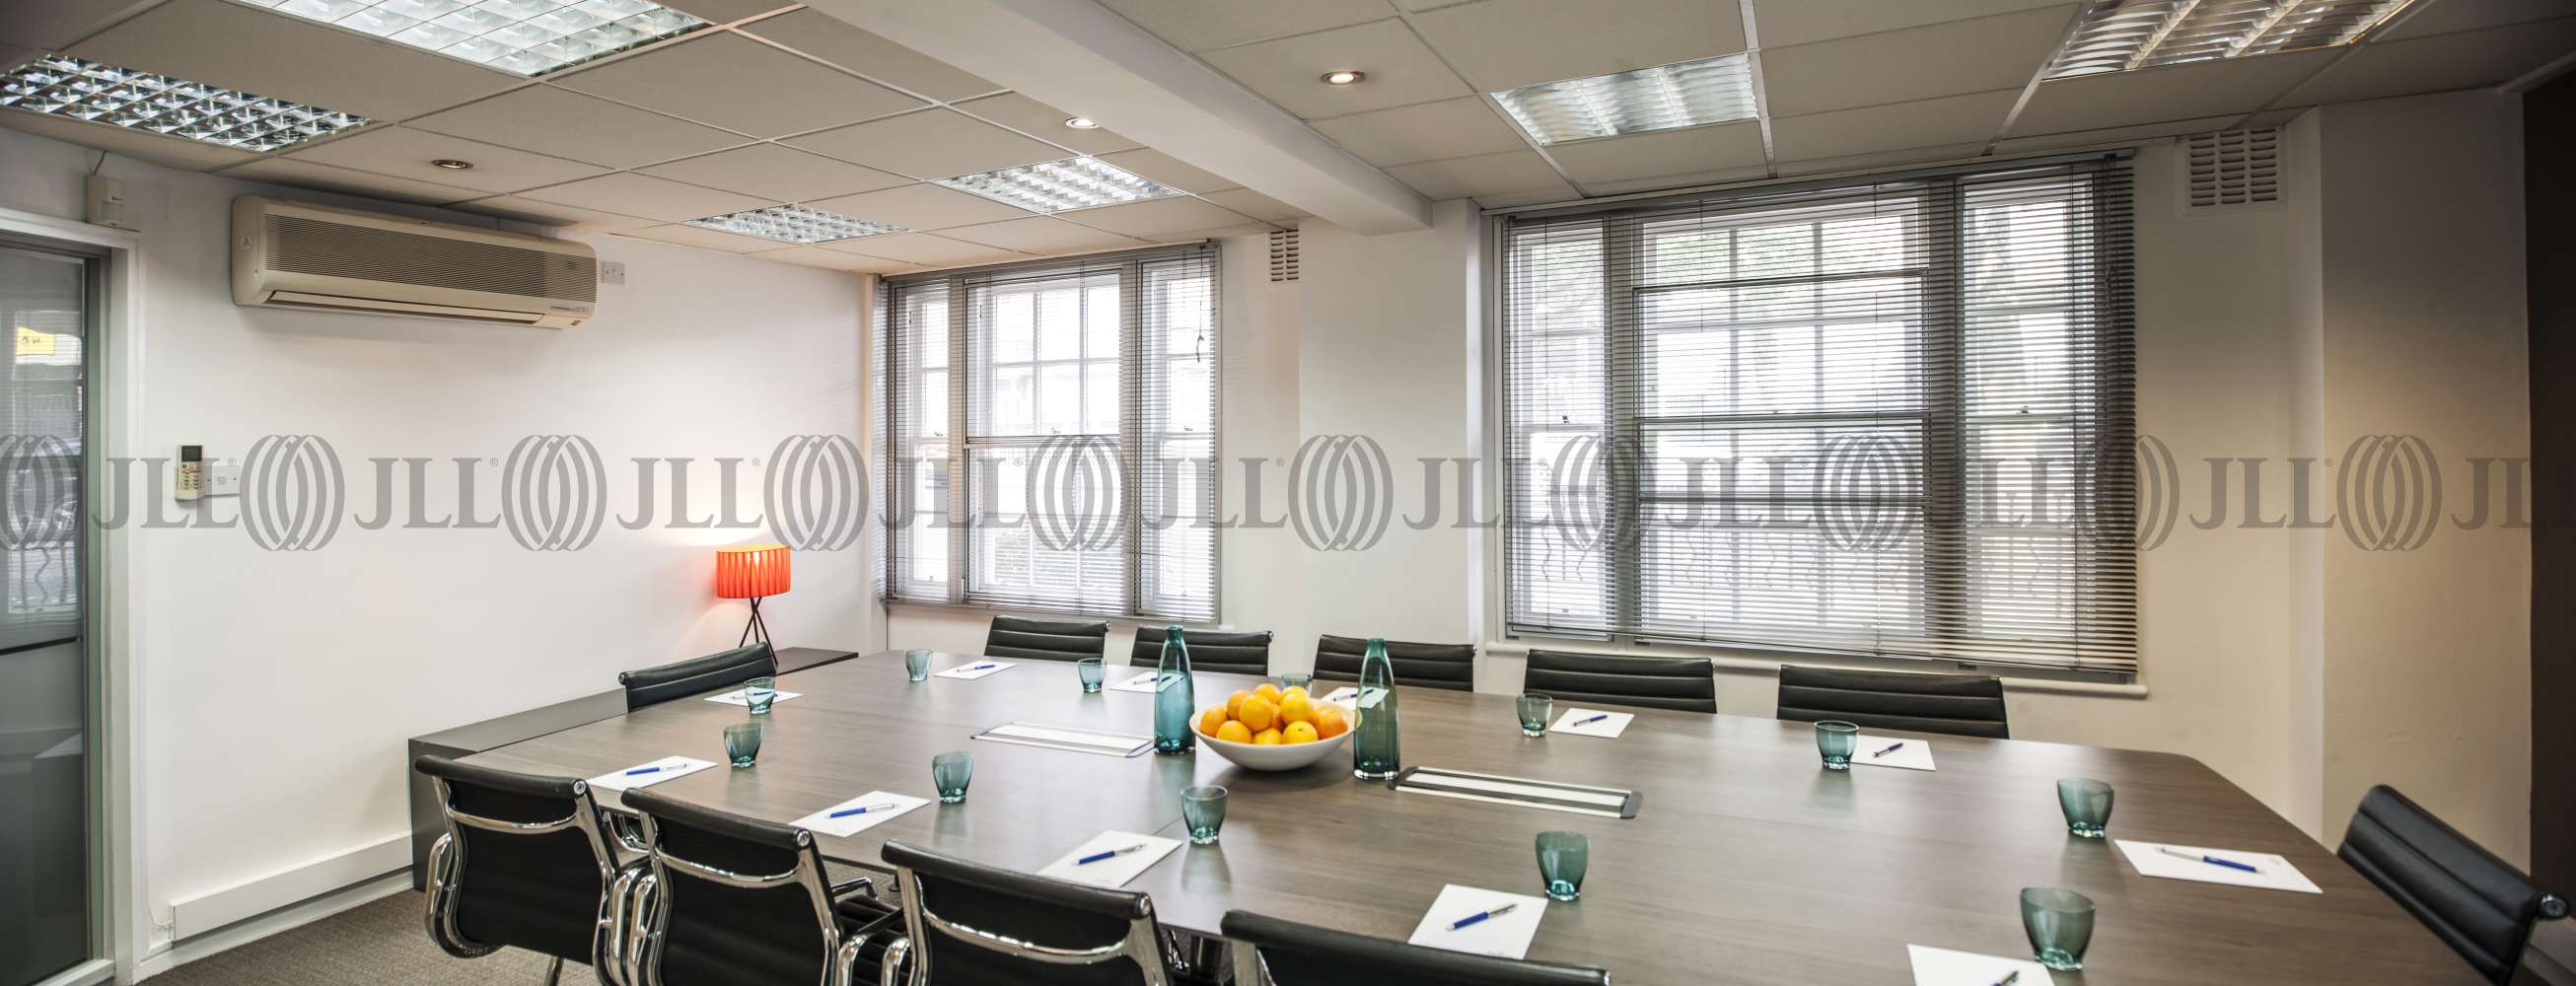 Serviced office London, W2 2UT - 1 Burwood Place  - 005